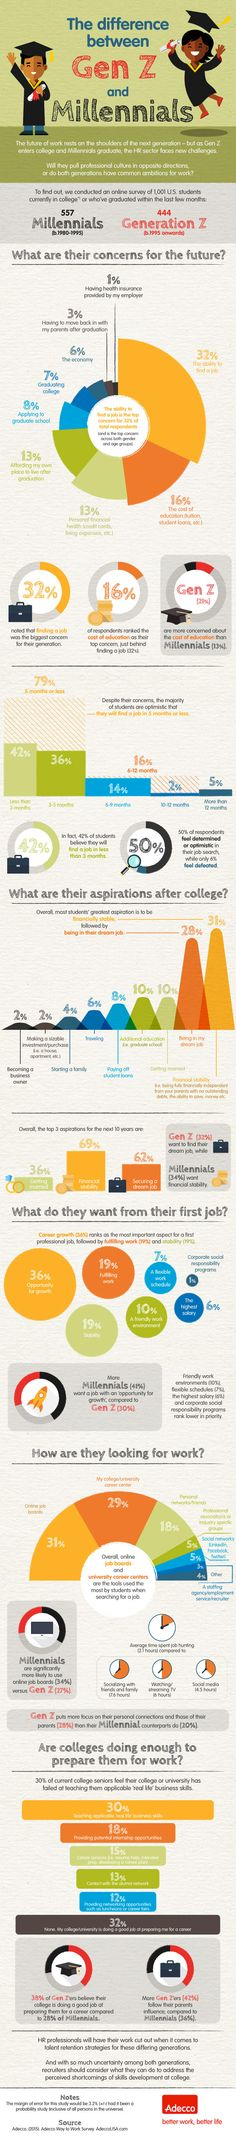 Here's What the Future of Work Look Like to Millennials and Generation Z (Infographic)